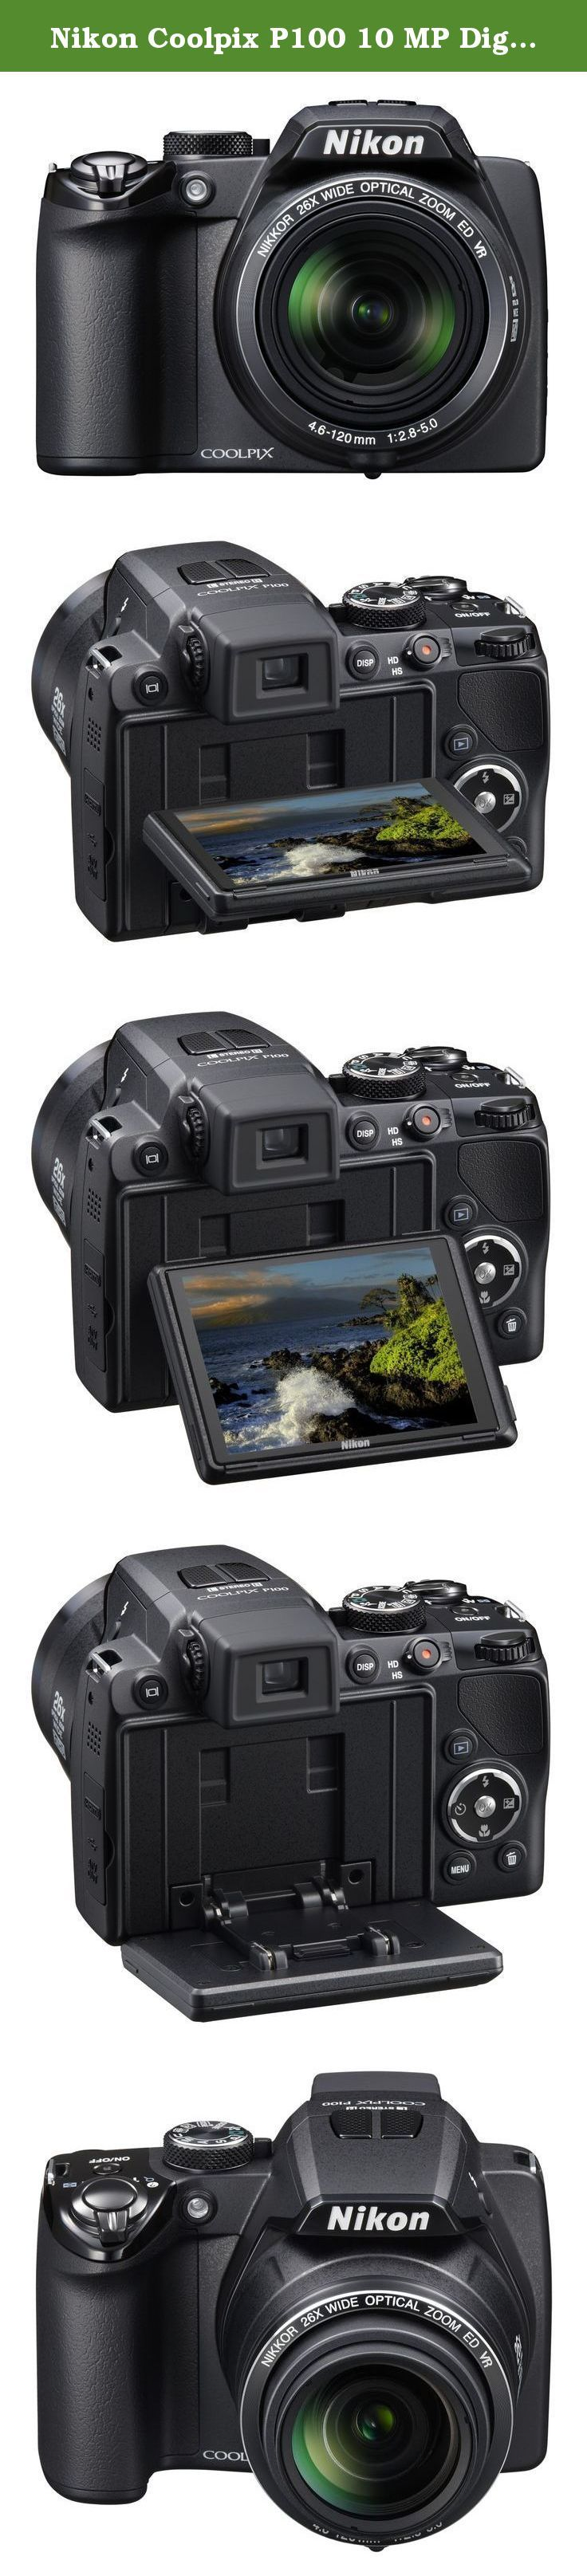 Nikon Coolpix P100 10 MP Digital Camera with 26x Optical Vibration Reduction (VR) Zoom and 3-Inch LCD (Black) (OLD MODEL). Zoom closer, shoot faster, and do more with Nikon's Coolpix P100, with its new CMOS sensor, 10.3 effective megapixels and incredible 26x optical Zoom-Nikkor ED glass lens. The cameras huge bright 3.0-inch high-resolution HVGA (460k-dot) vari-angle LCD and Electronic Viewfinder makes it easy to compose and share your pictures. Shoot Full HD (1080i) video with stereo…